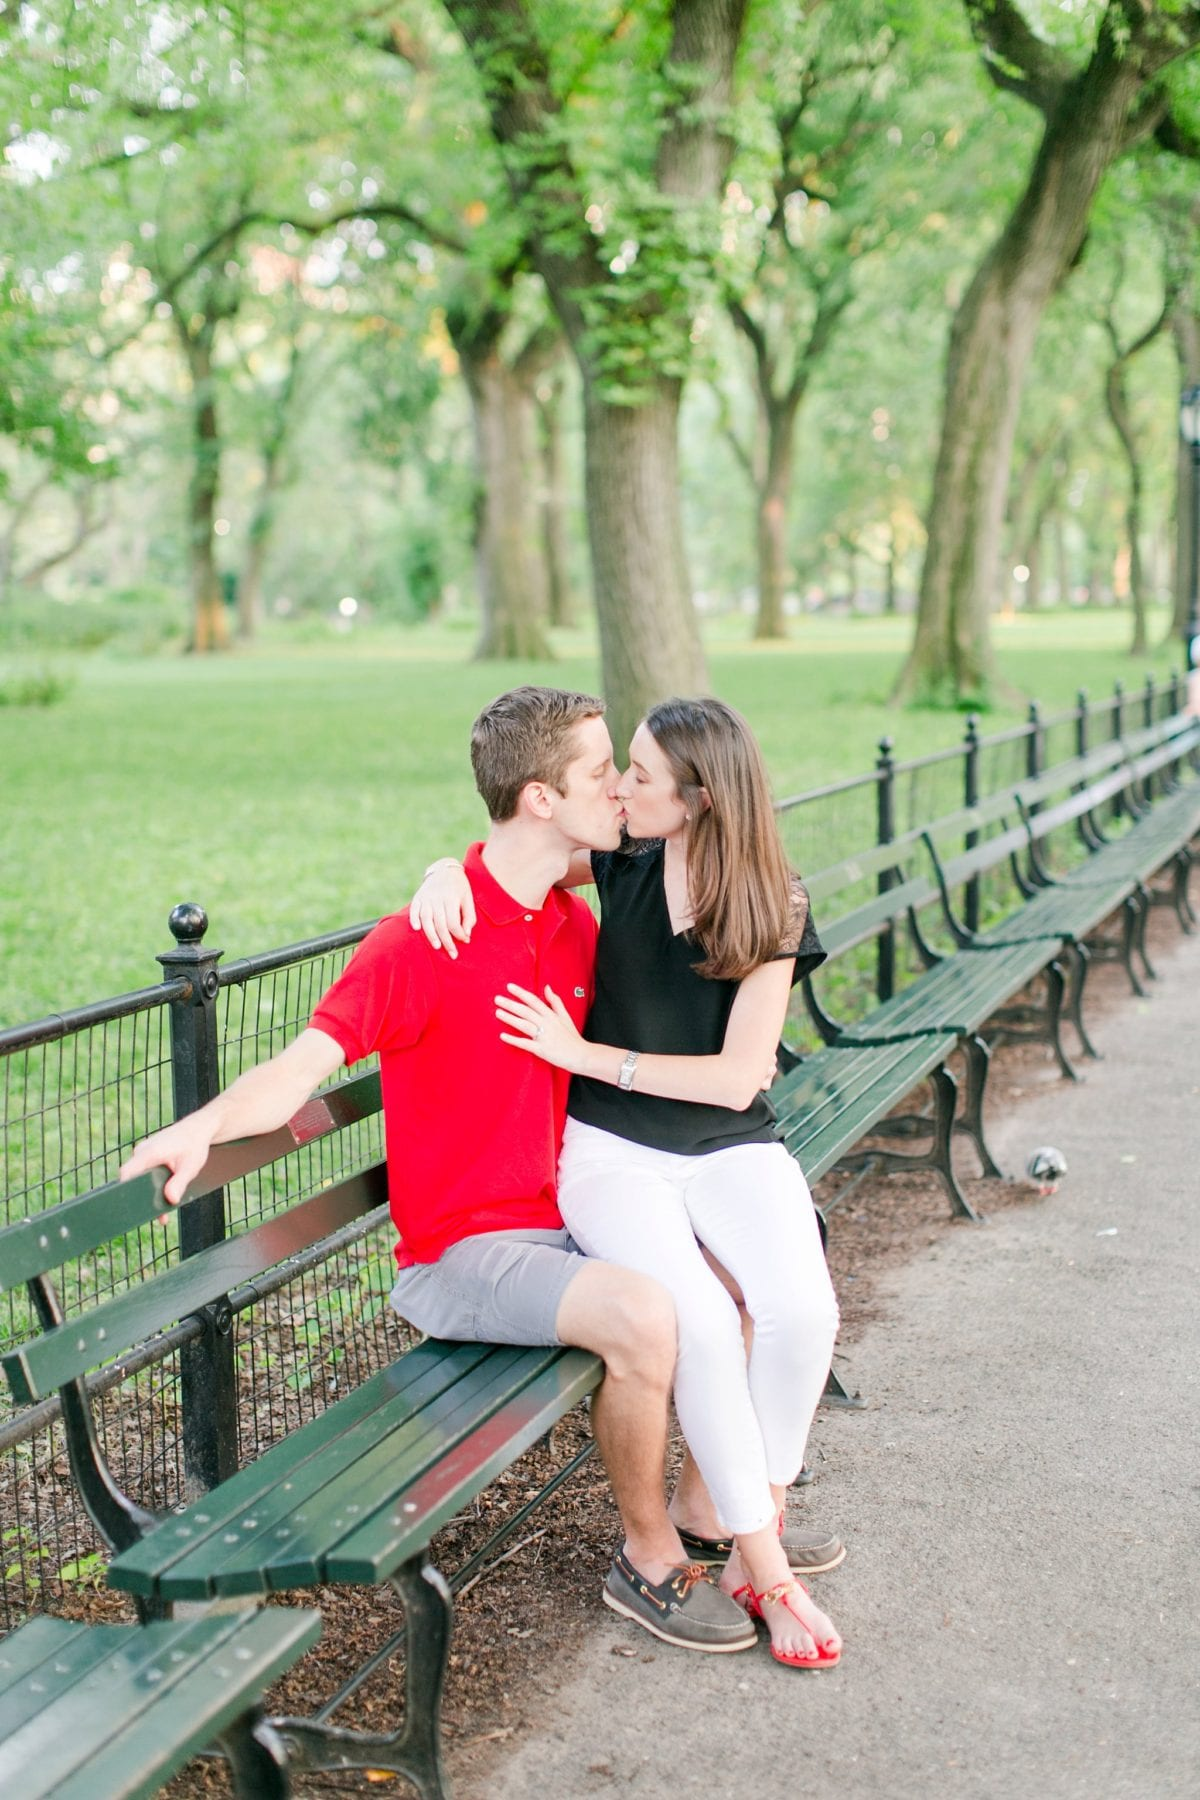 West Village Central Park Engagement Photos NYC Wedding Photographer Megan Kelsey Photography-240.jpg